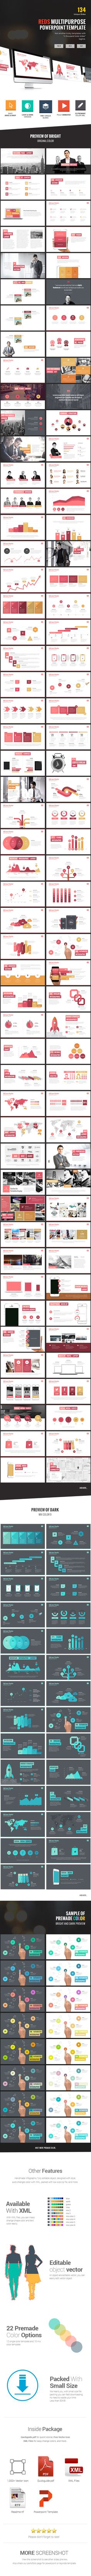 Red's - Creative Multipurpose Powerpoint Template #design #slides Download: http://graphicriver.net/item/reds-creative-multipurpose-powerpoint-template/13825795?ref=ksioks